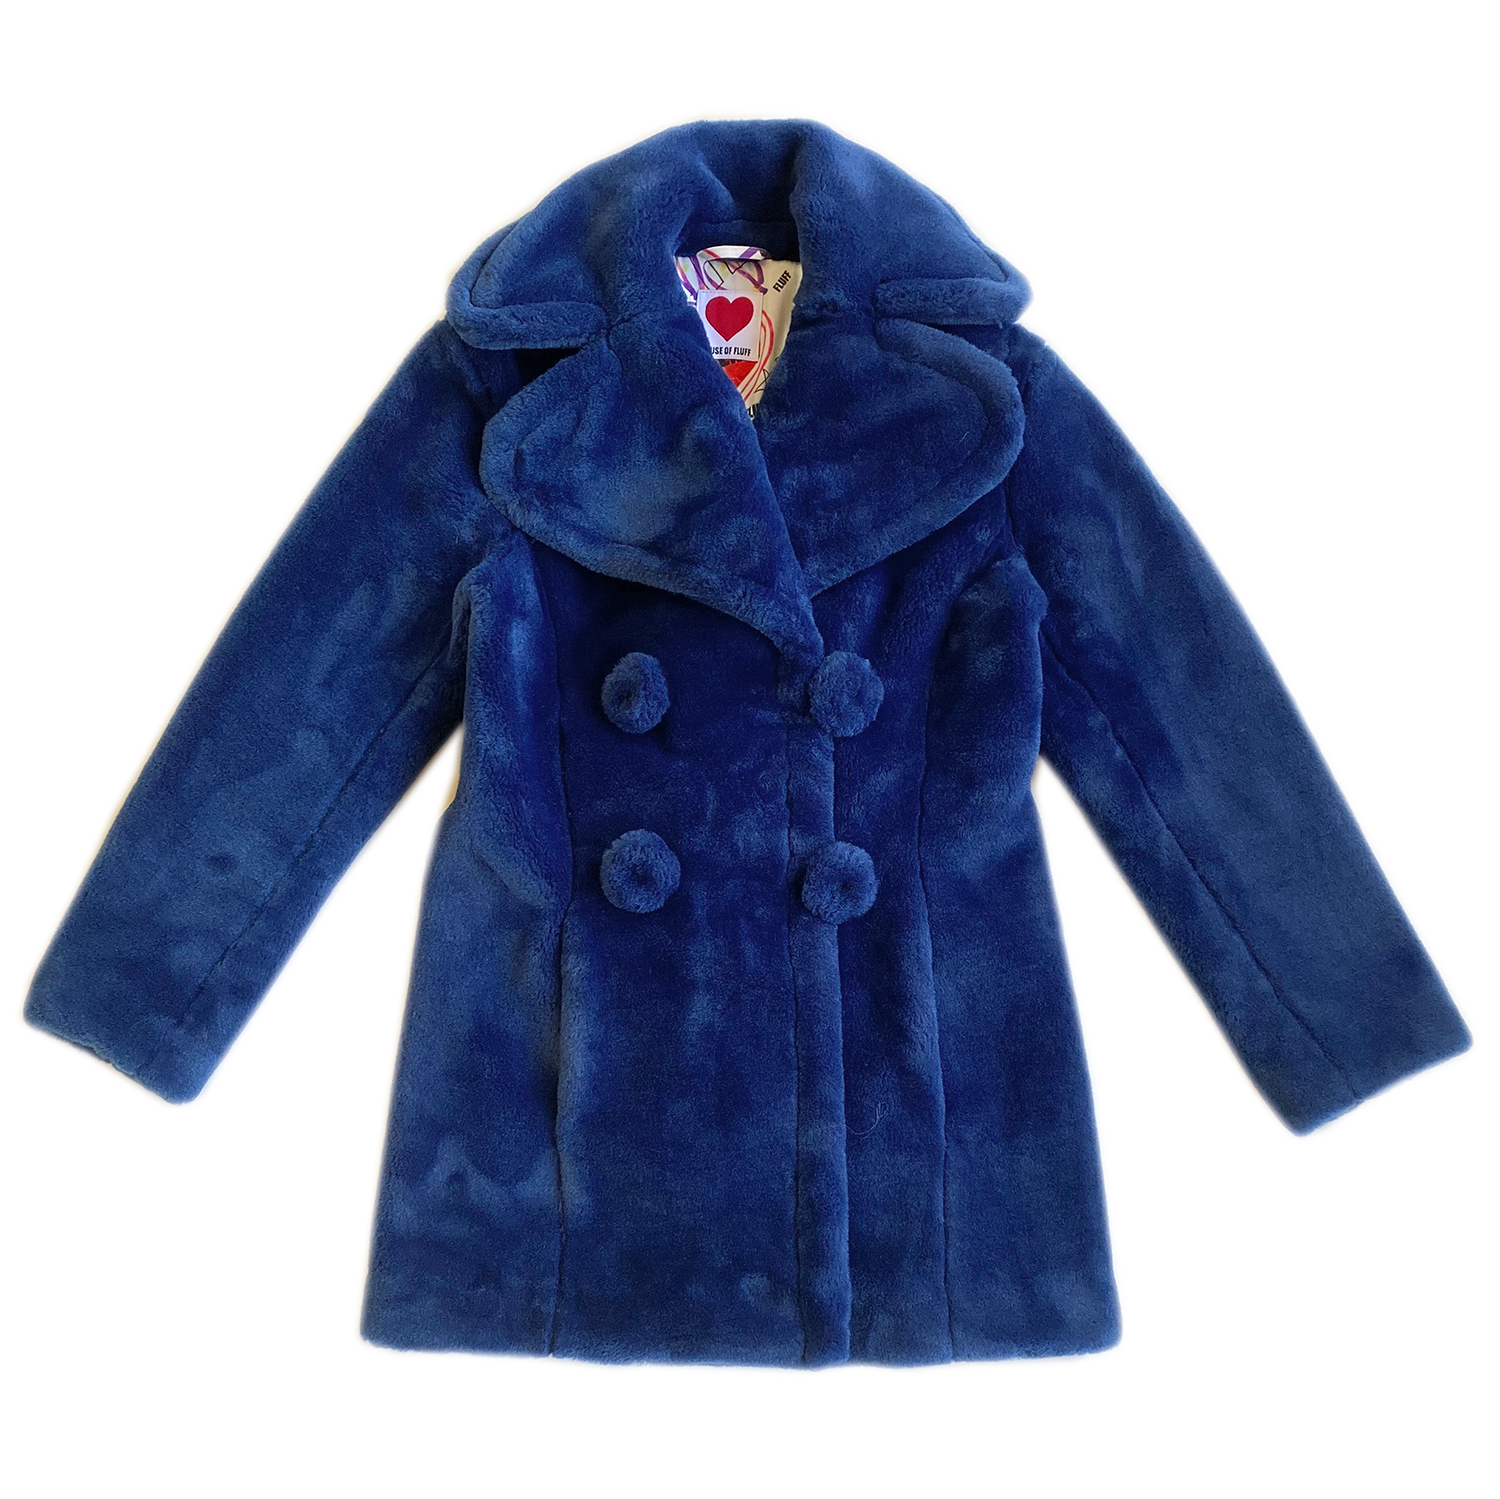 products/biofur_bluepeacoat_front.png